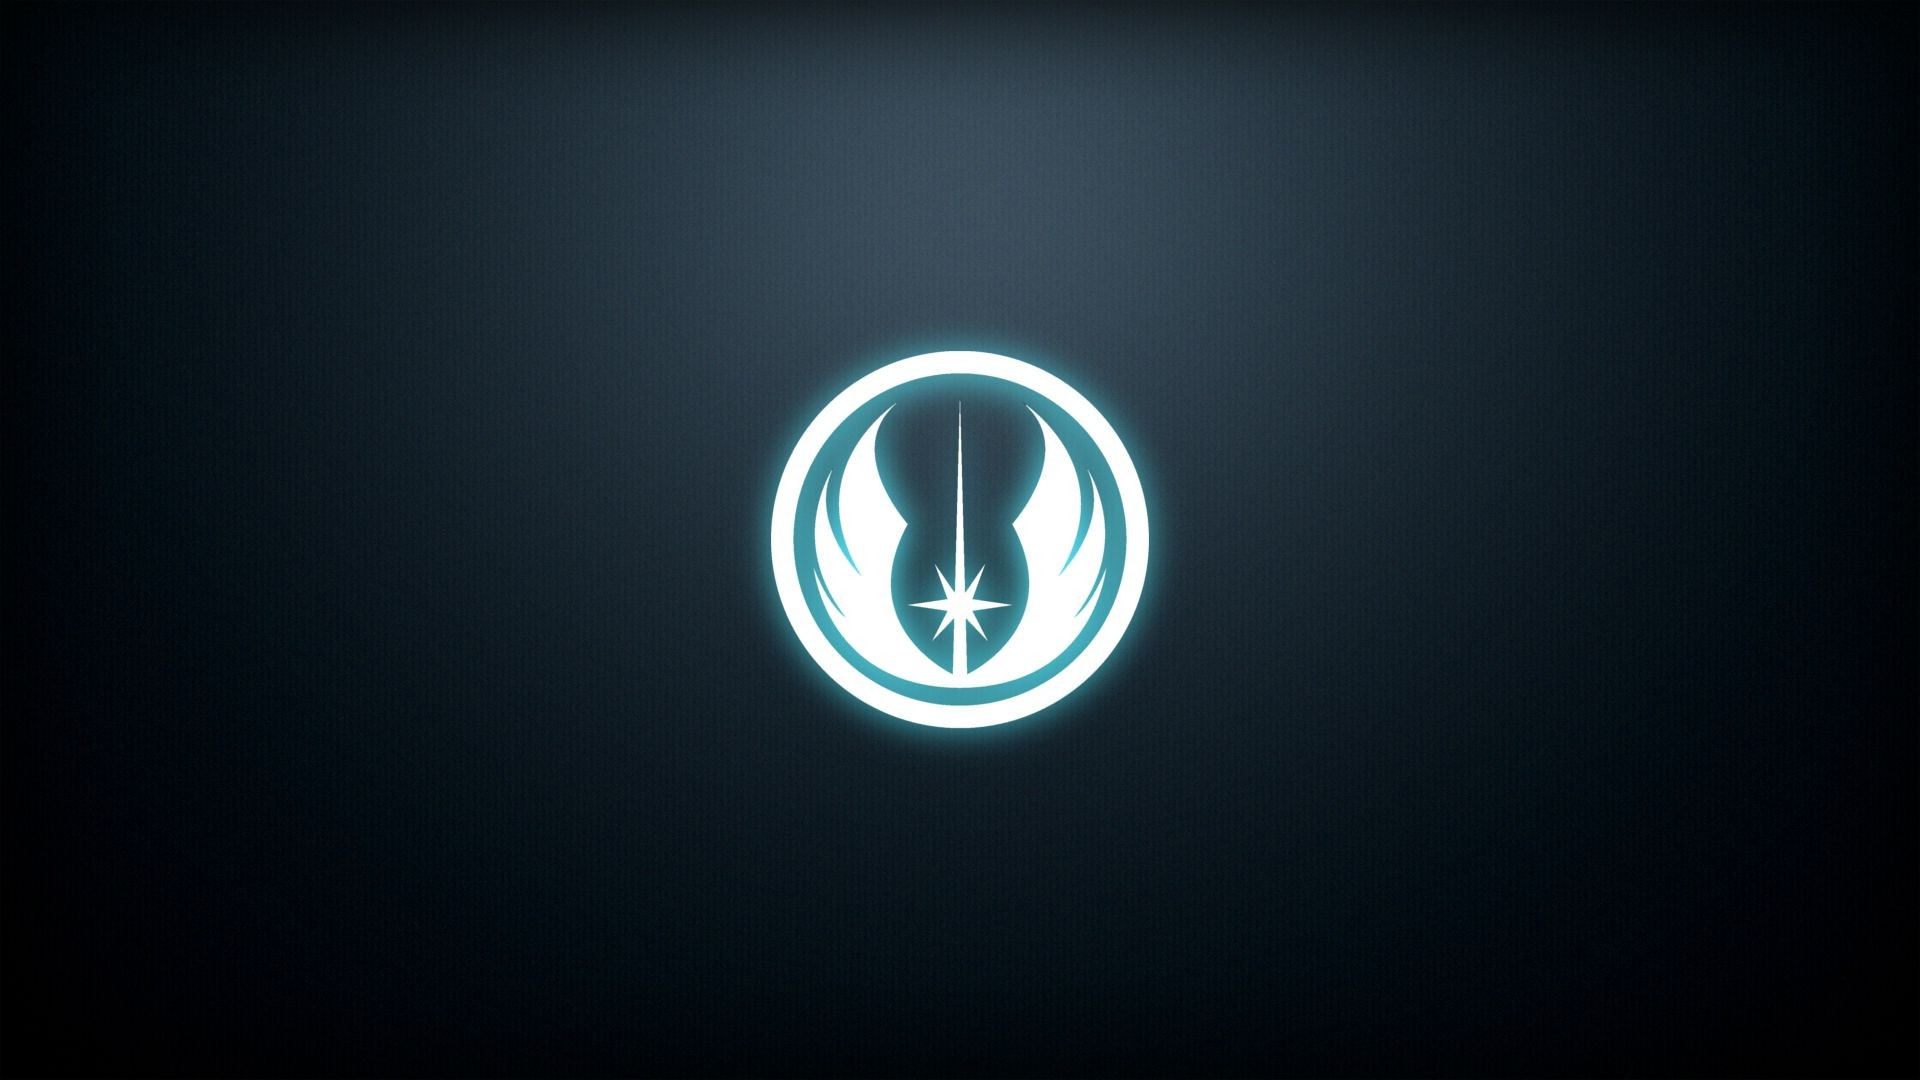 Star Wars Jedi Wallpapers HD Desktop And Mobile Backgrounds